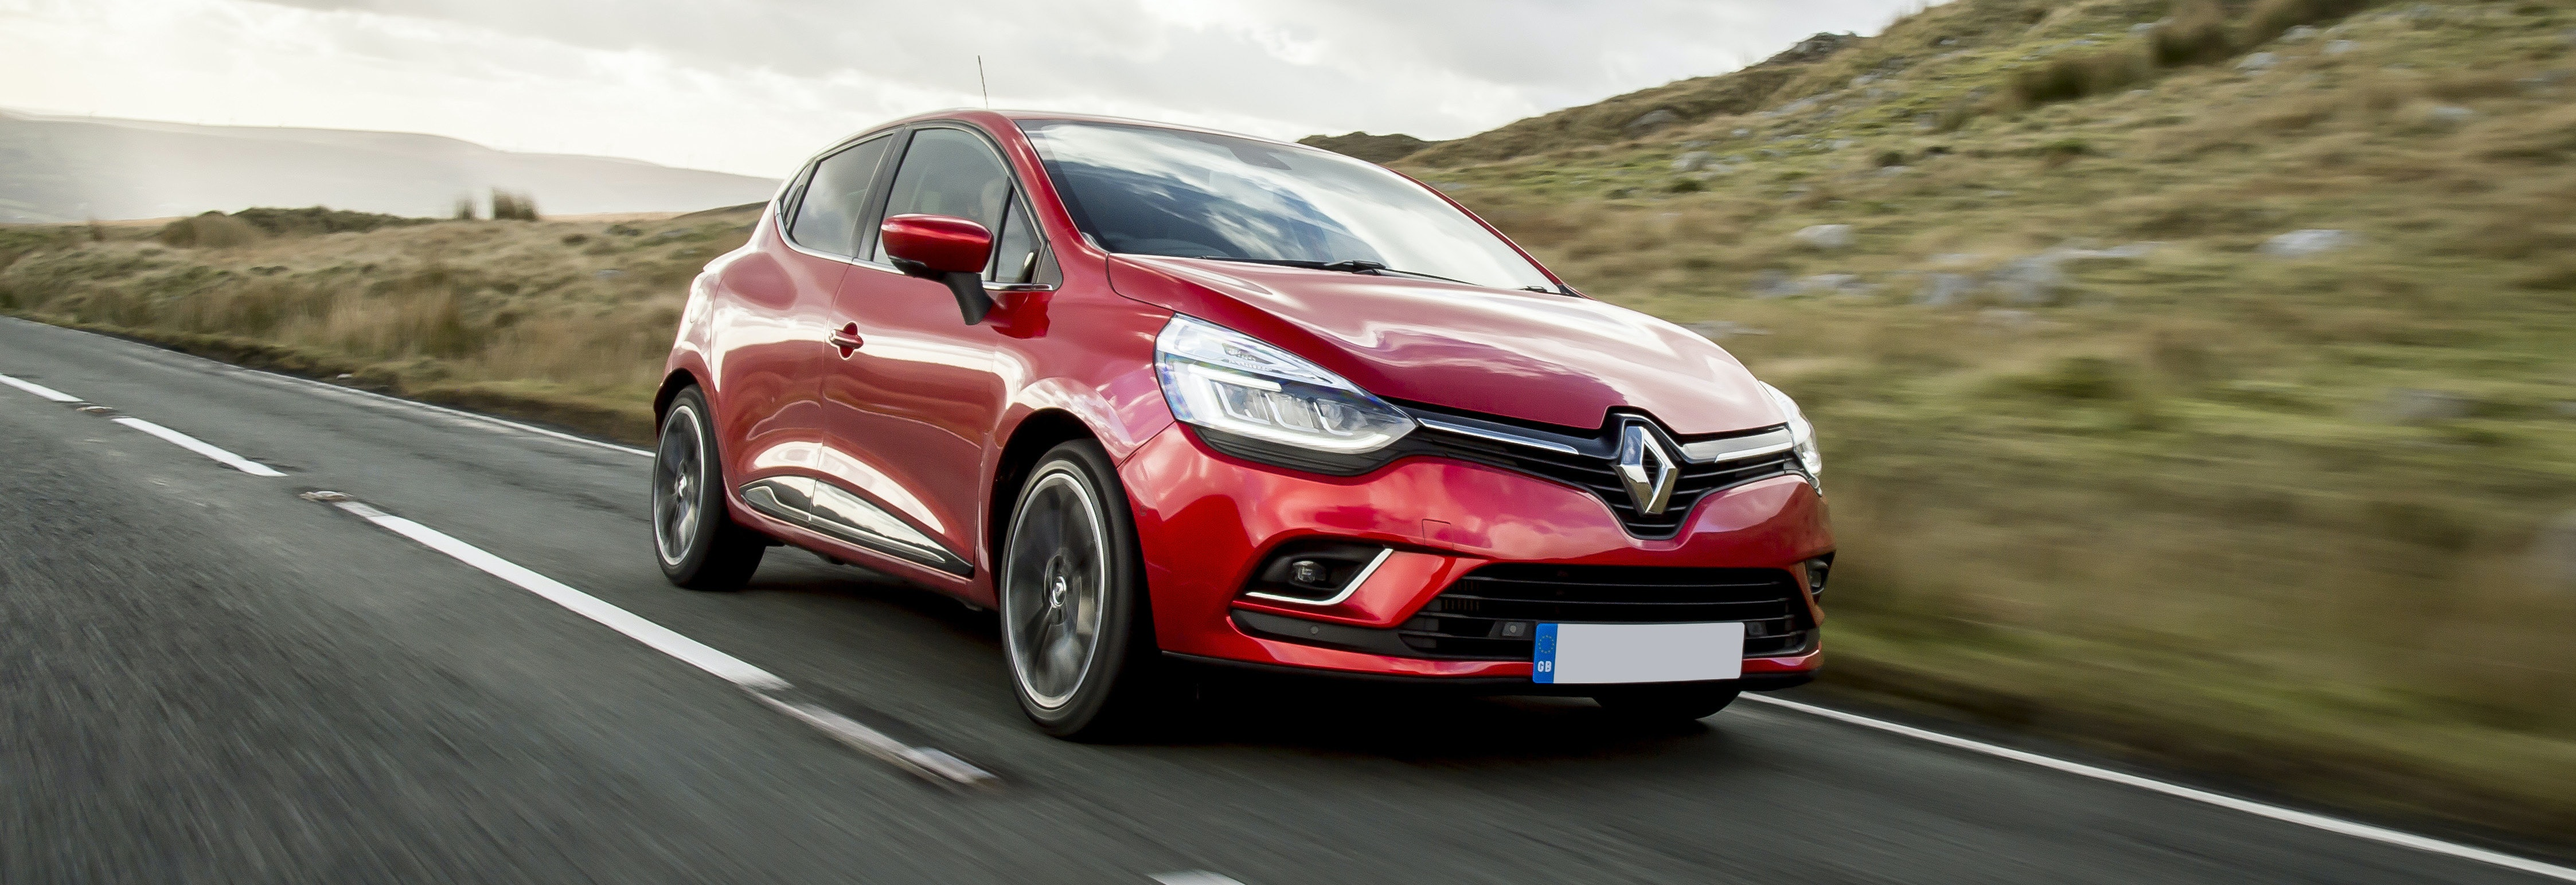 2018 renault clio red driving front